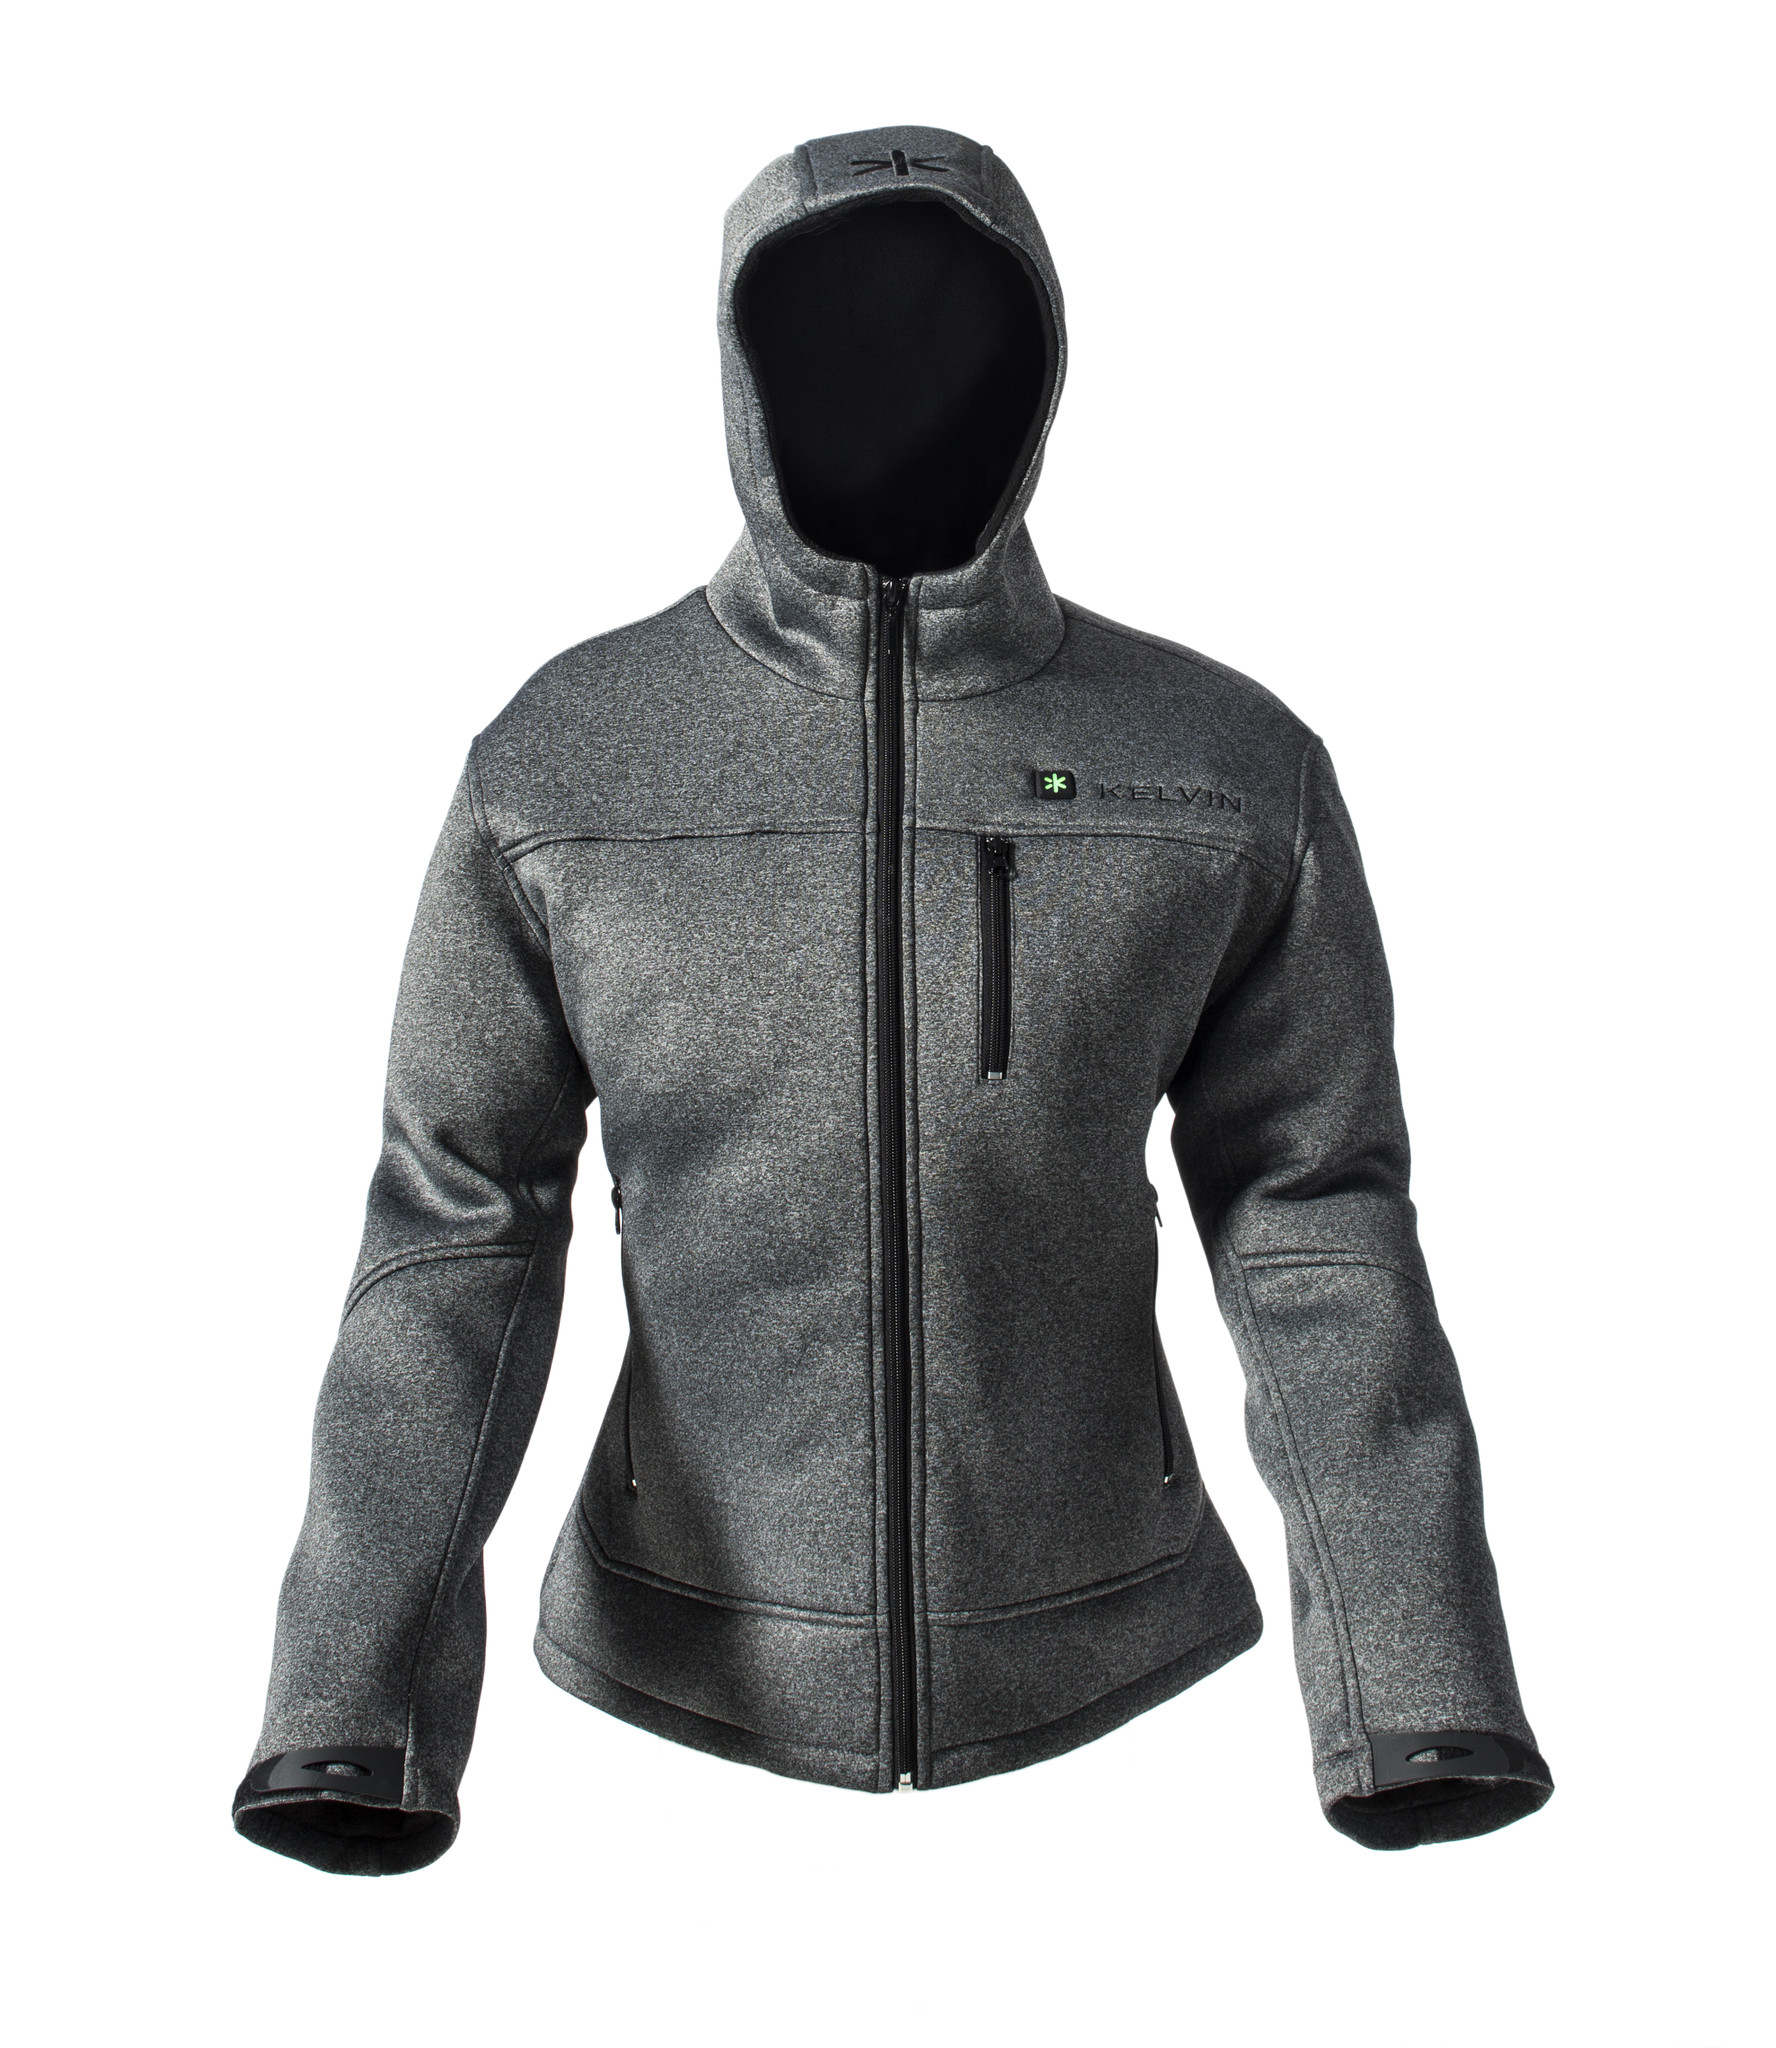 Kelvin Techstyles Women's Heated Jacket